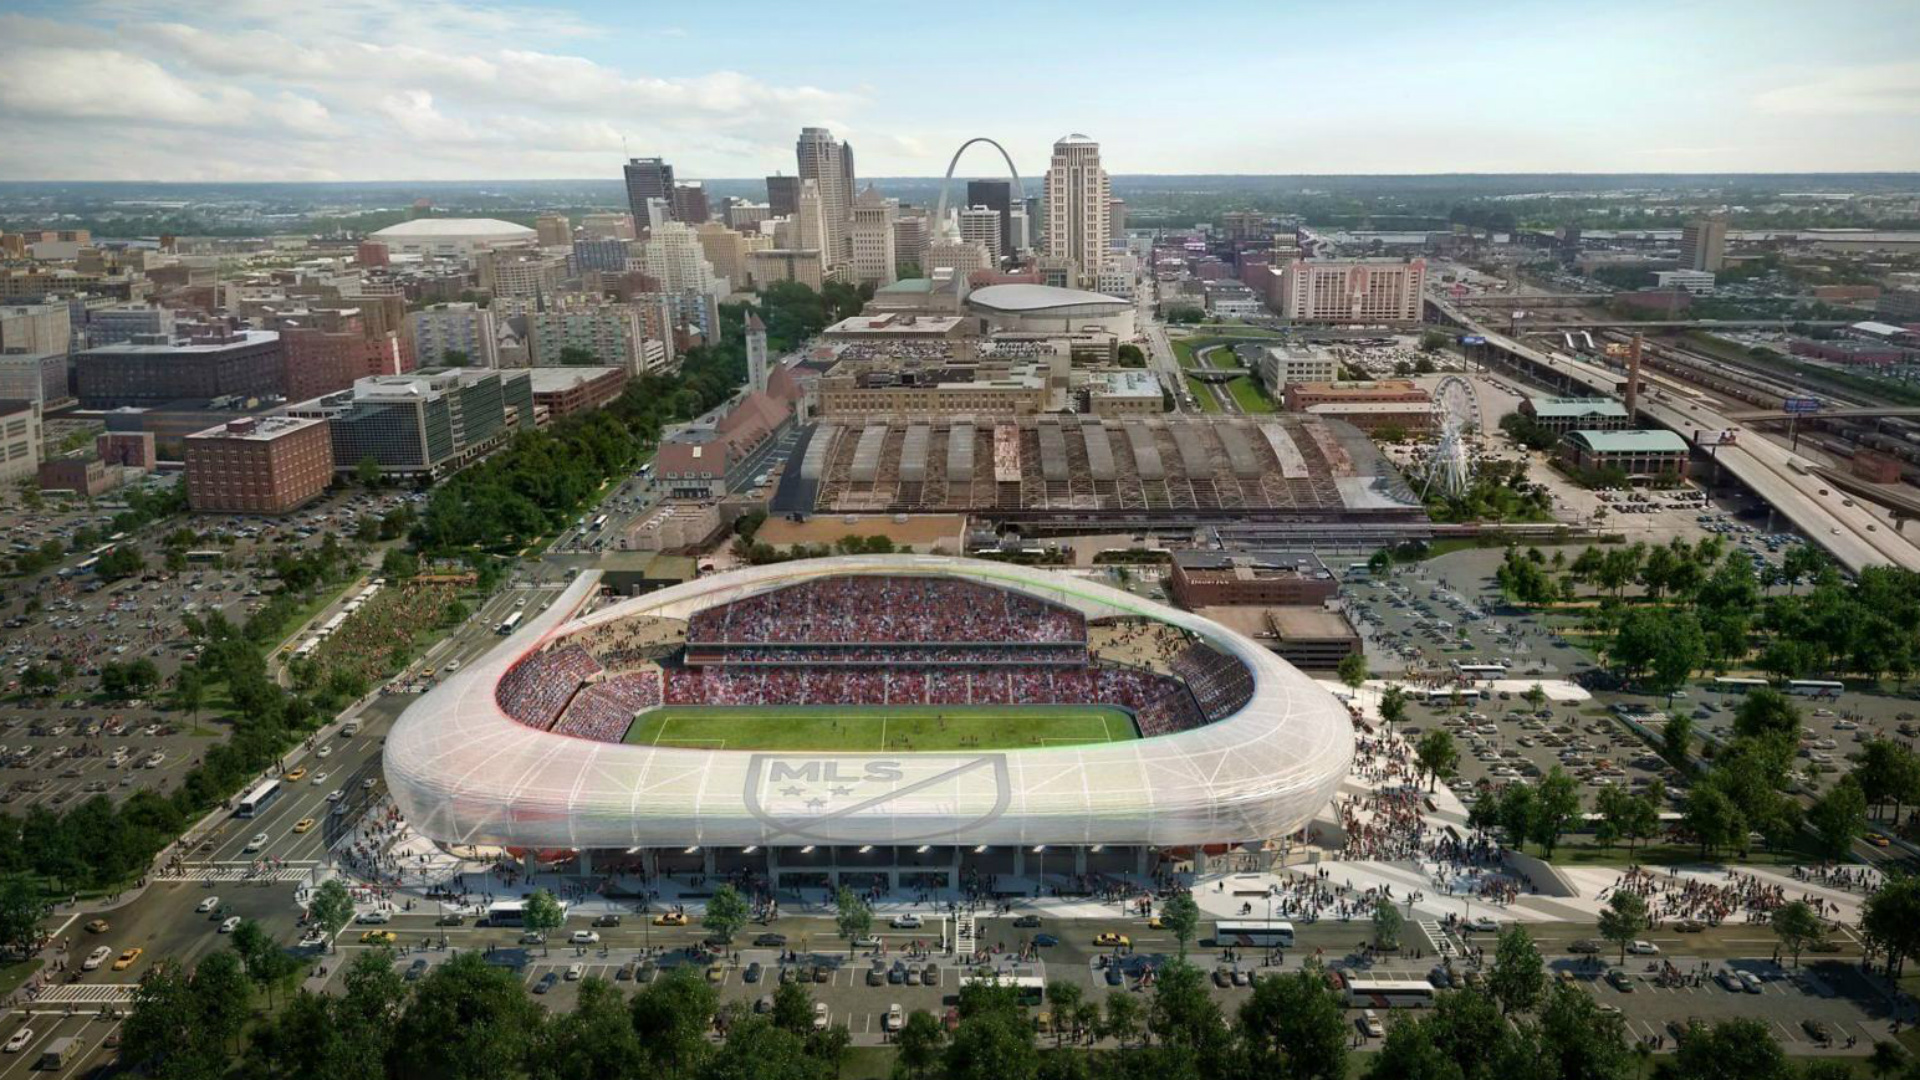 St Louis MLS stadium rendering